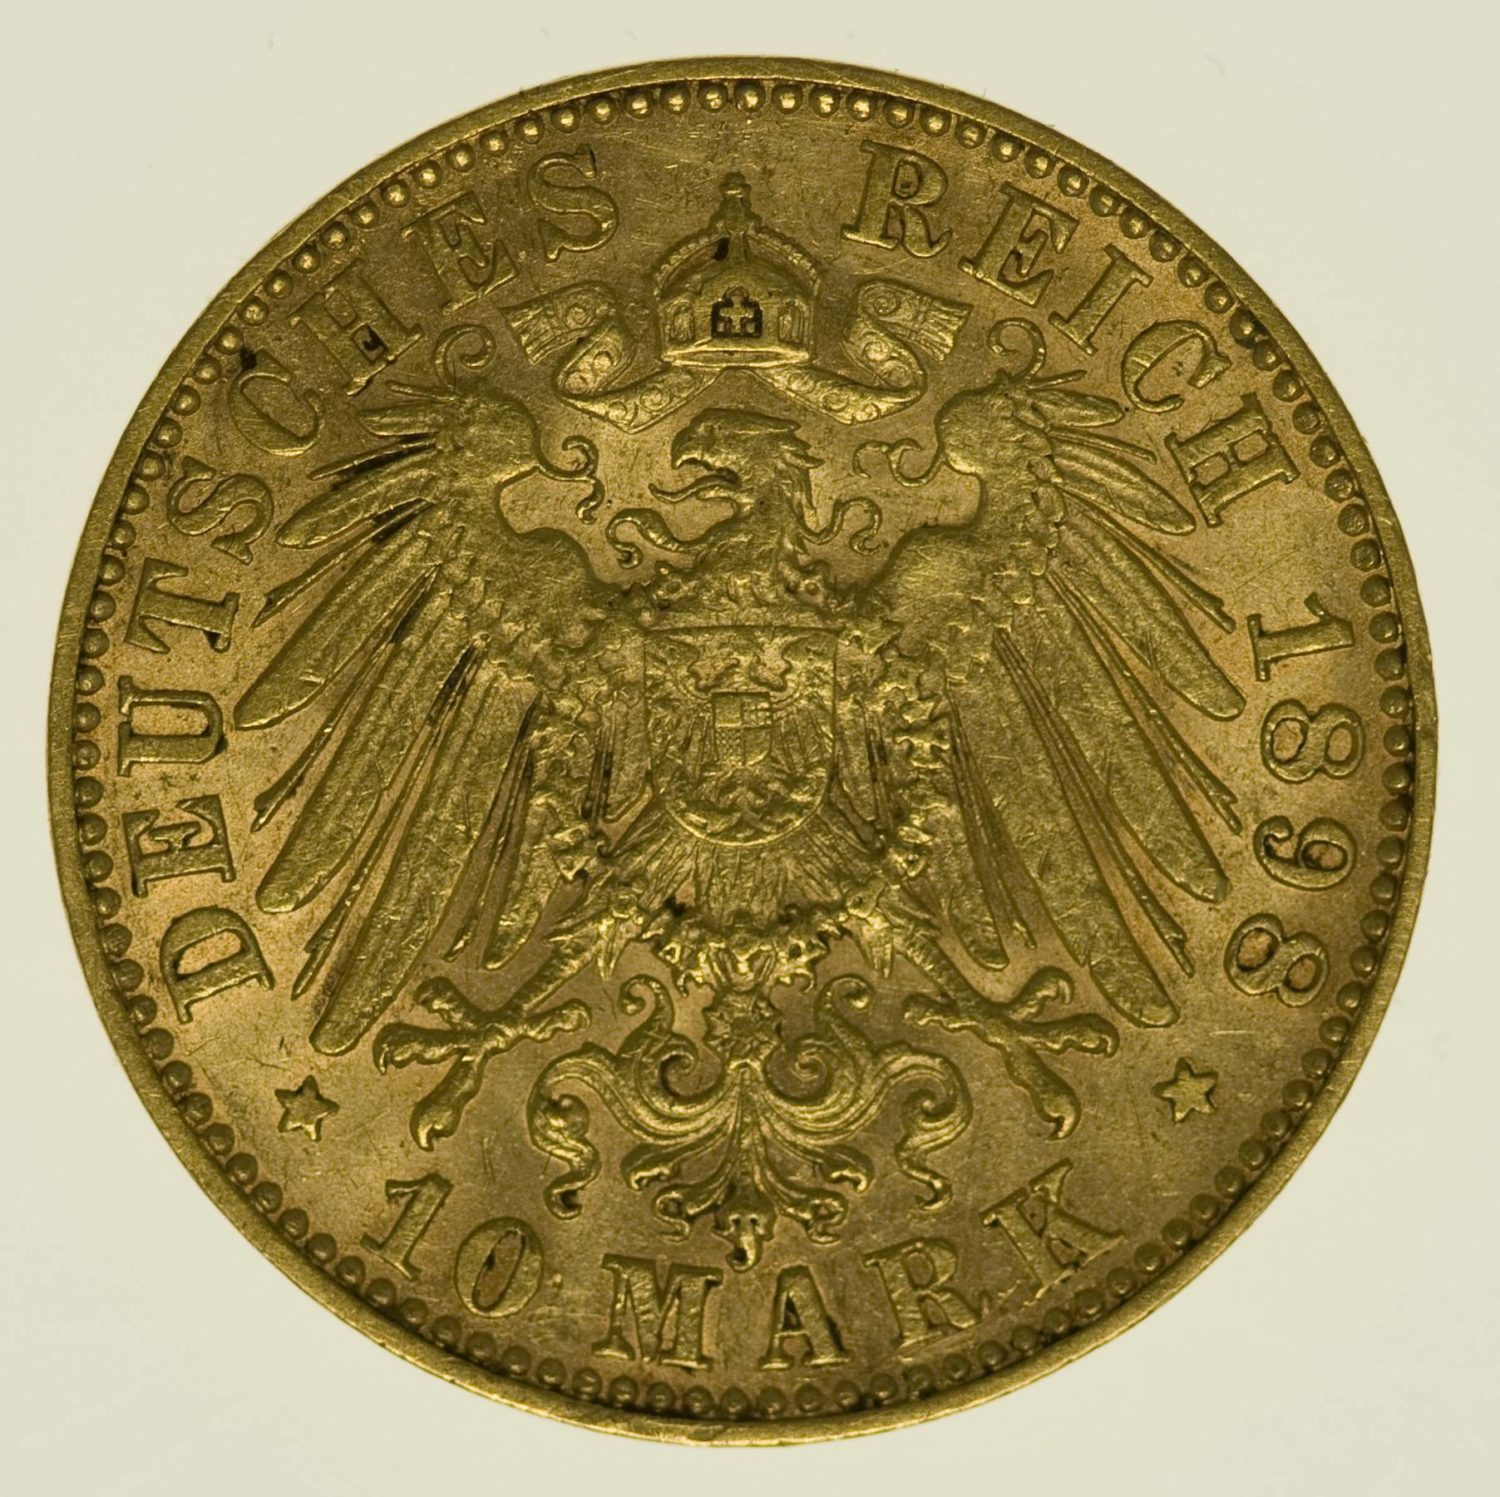 Sachsen Albert 10 Mark 1898 Gold 3,58 Gramm fein RAR